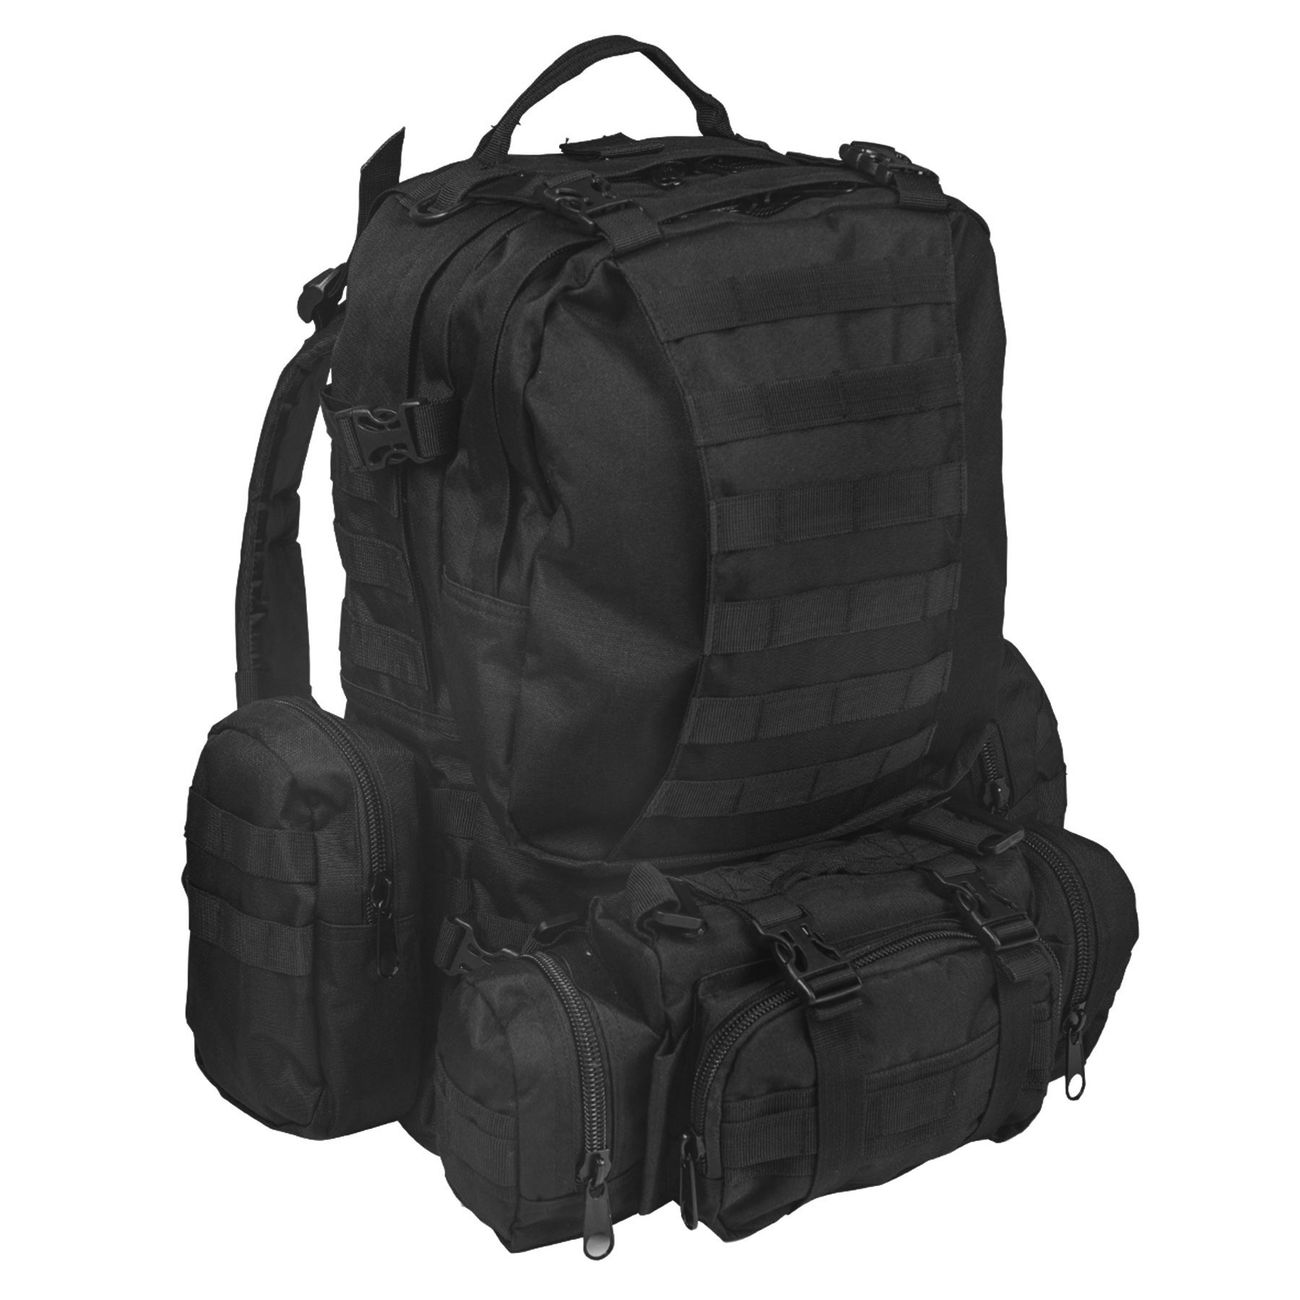 Mil-Tec Rucksack Defense Pack Assembly 36 ltr. schwarz 0